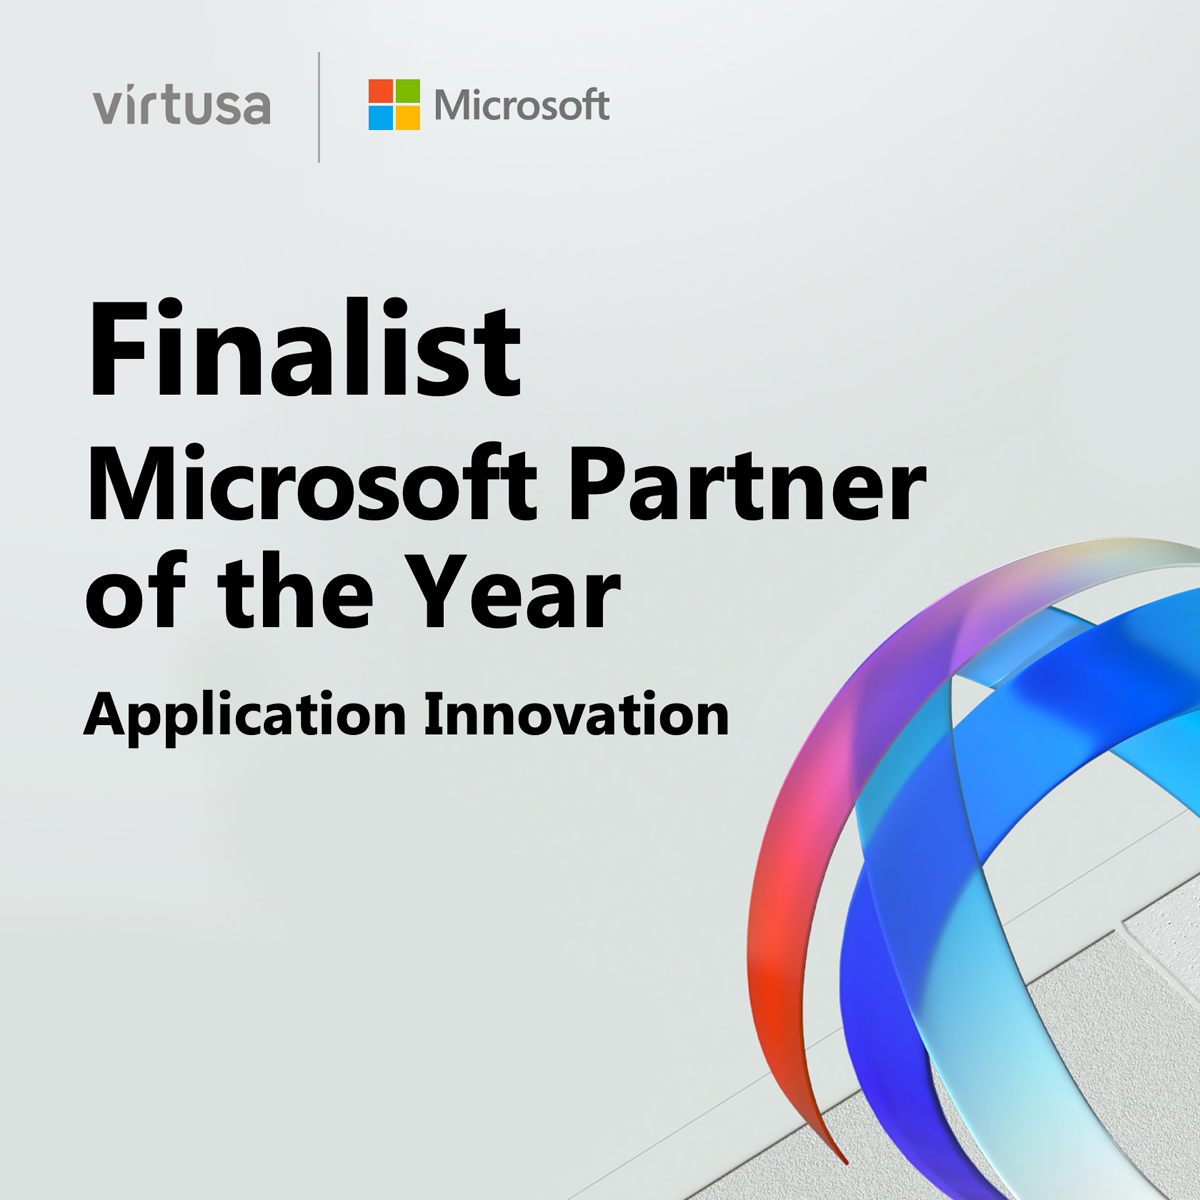 Virtusa Named a Finalist in the Application Innovation 2020 Microsoft Partner of the Year Award